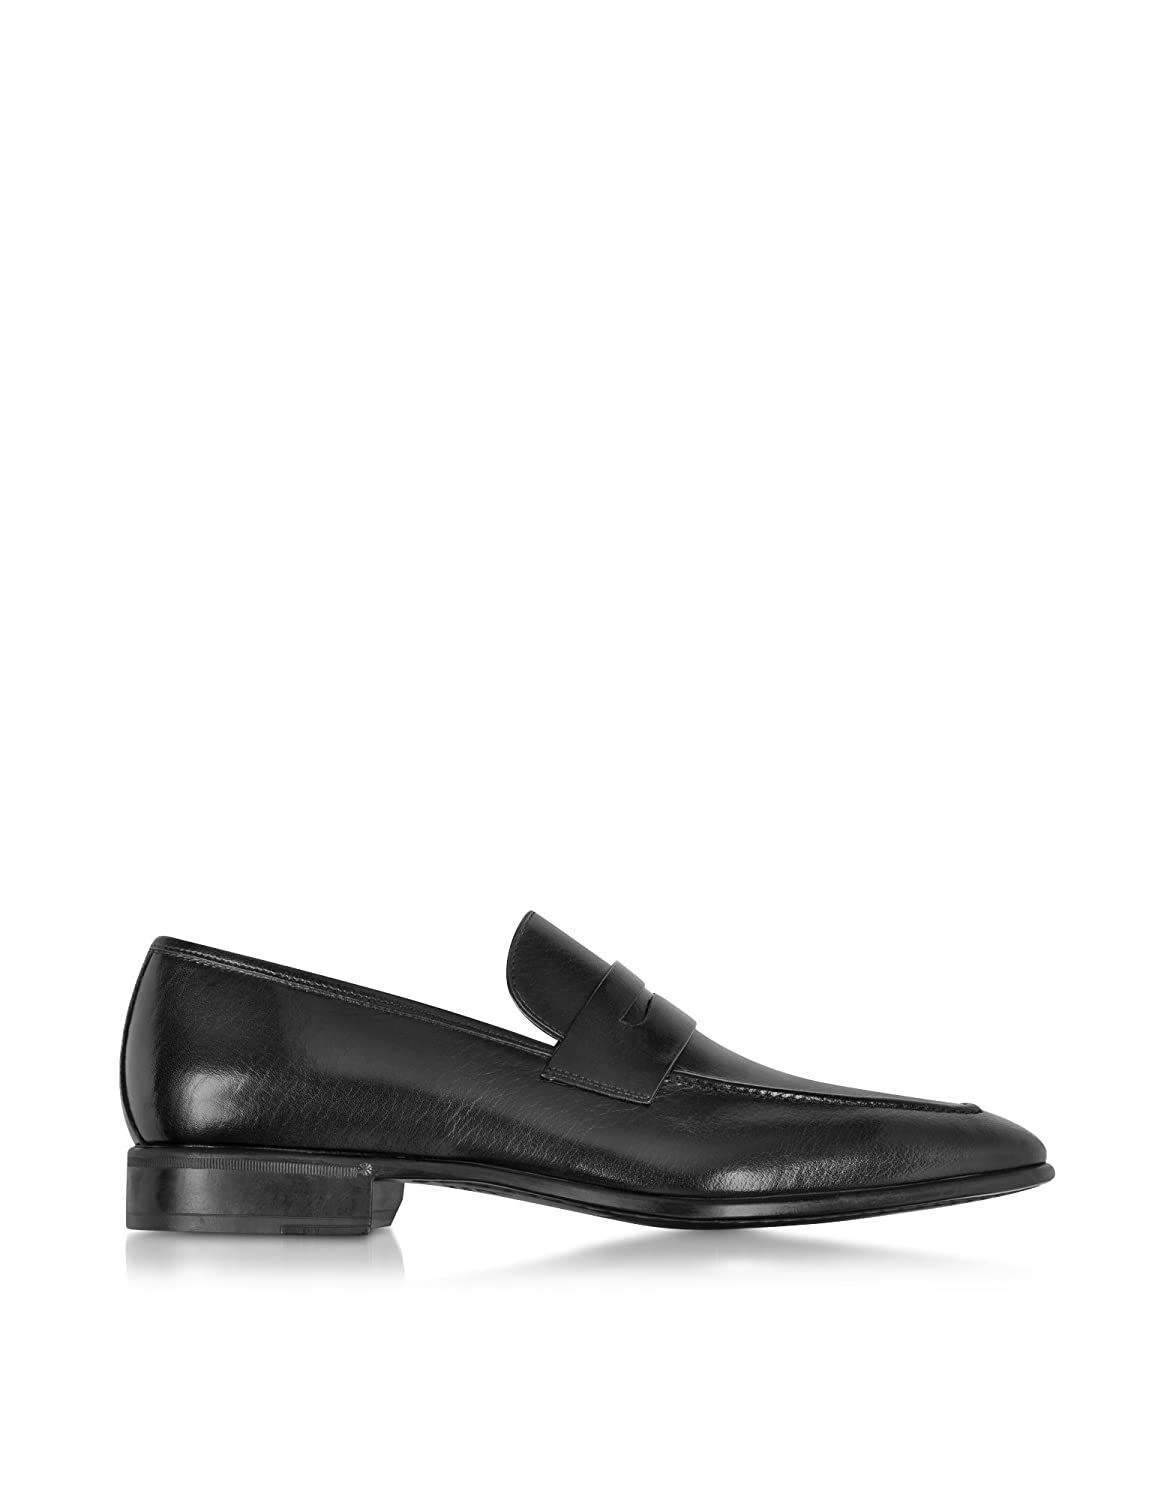 MORESCHI MEN'S 41335MQ BLACK LEATHER LOAFERS